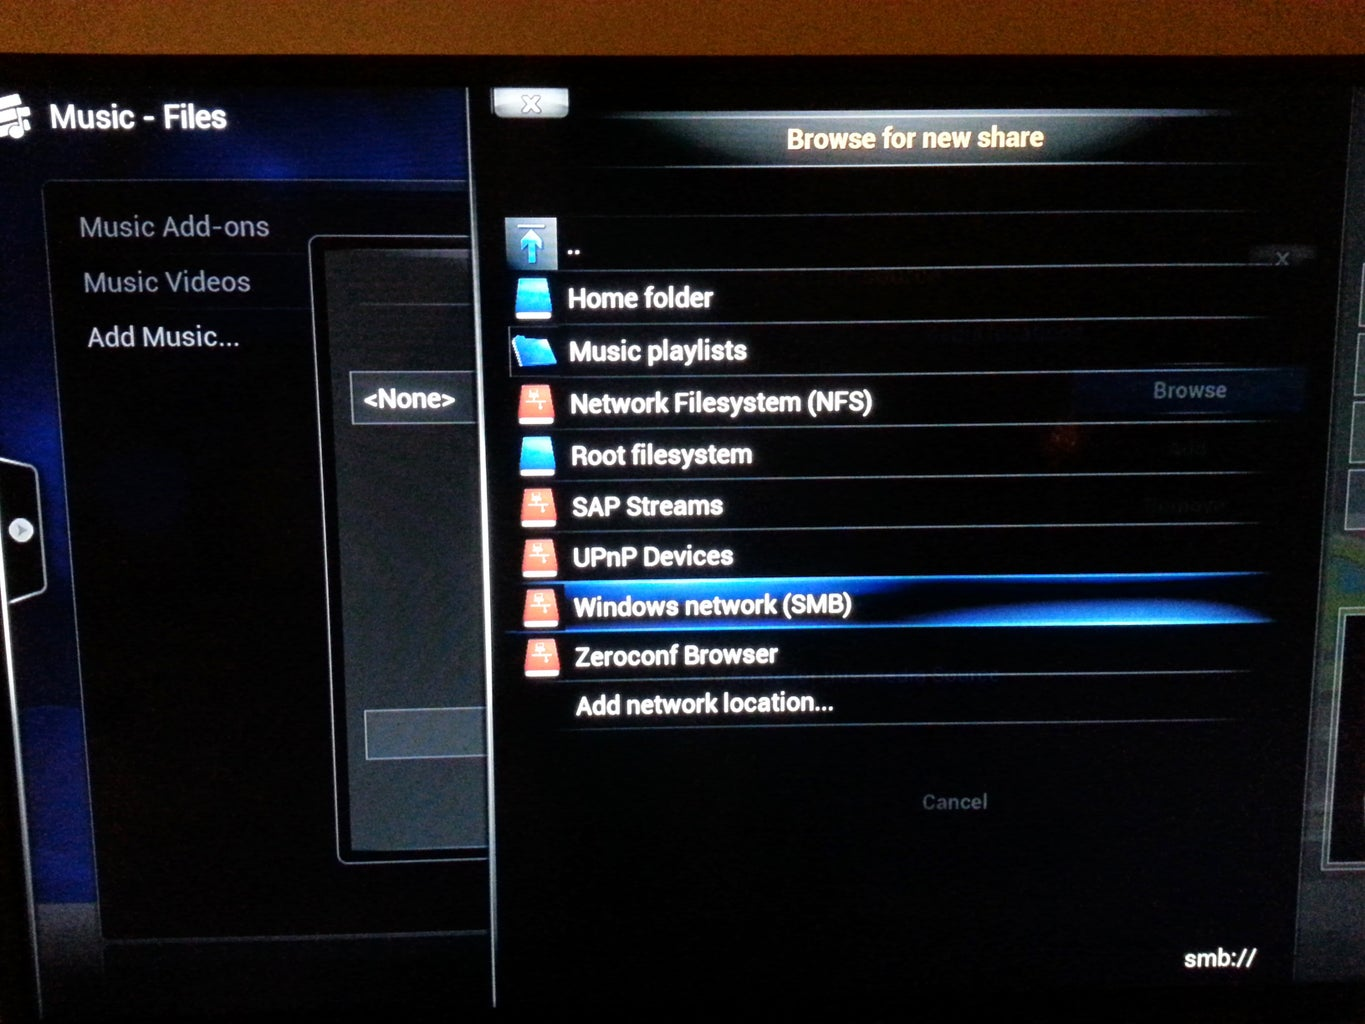 Part 2: Adding Movies, Music and Other Files